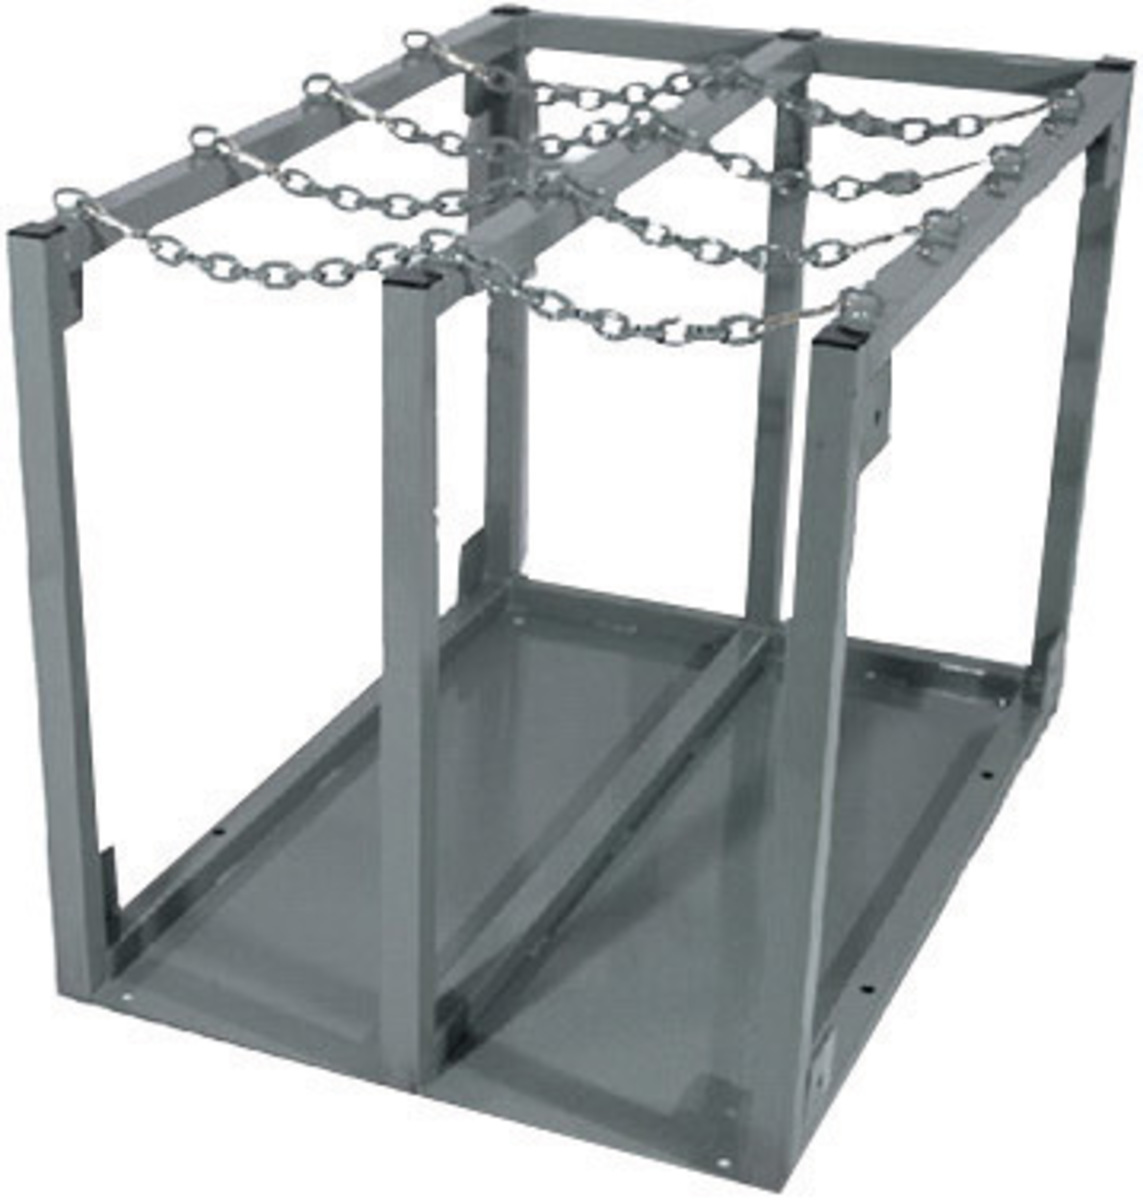 High Pressure Bottle Rack : Airgas antmcr anthony welded products quot